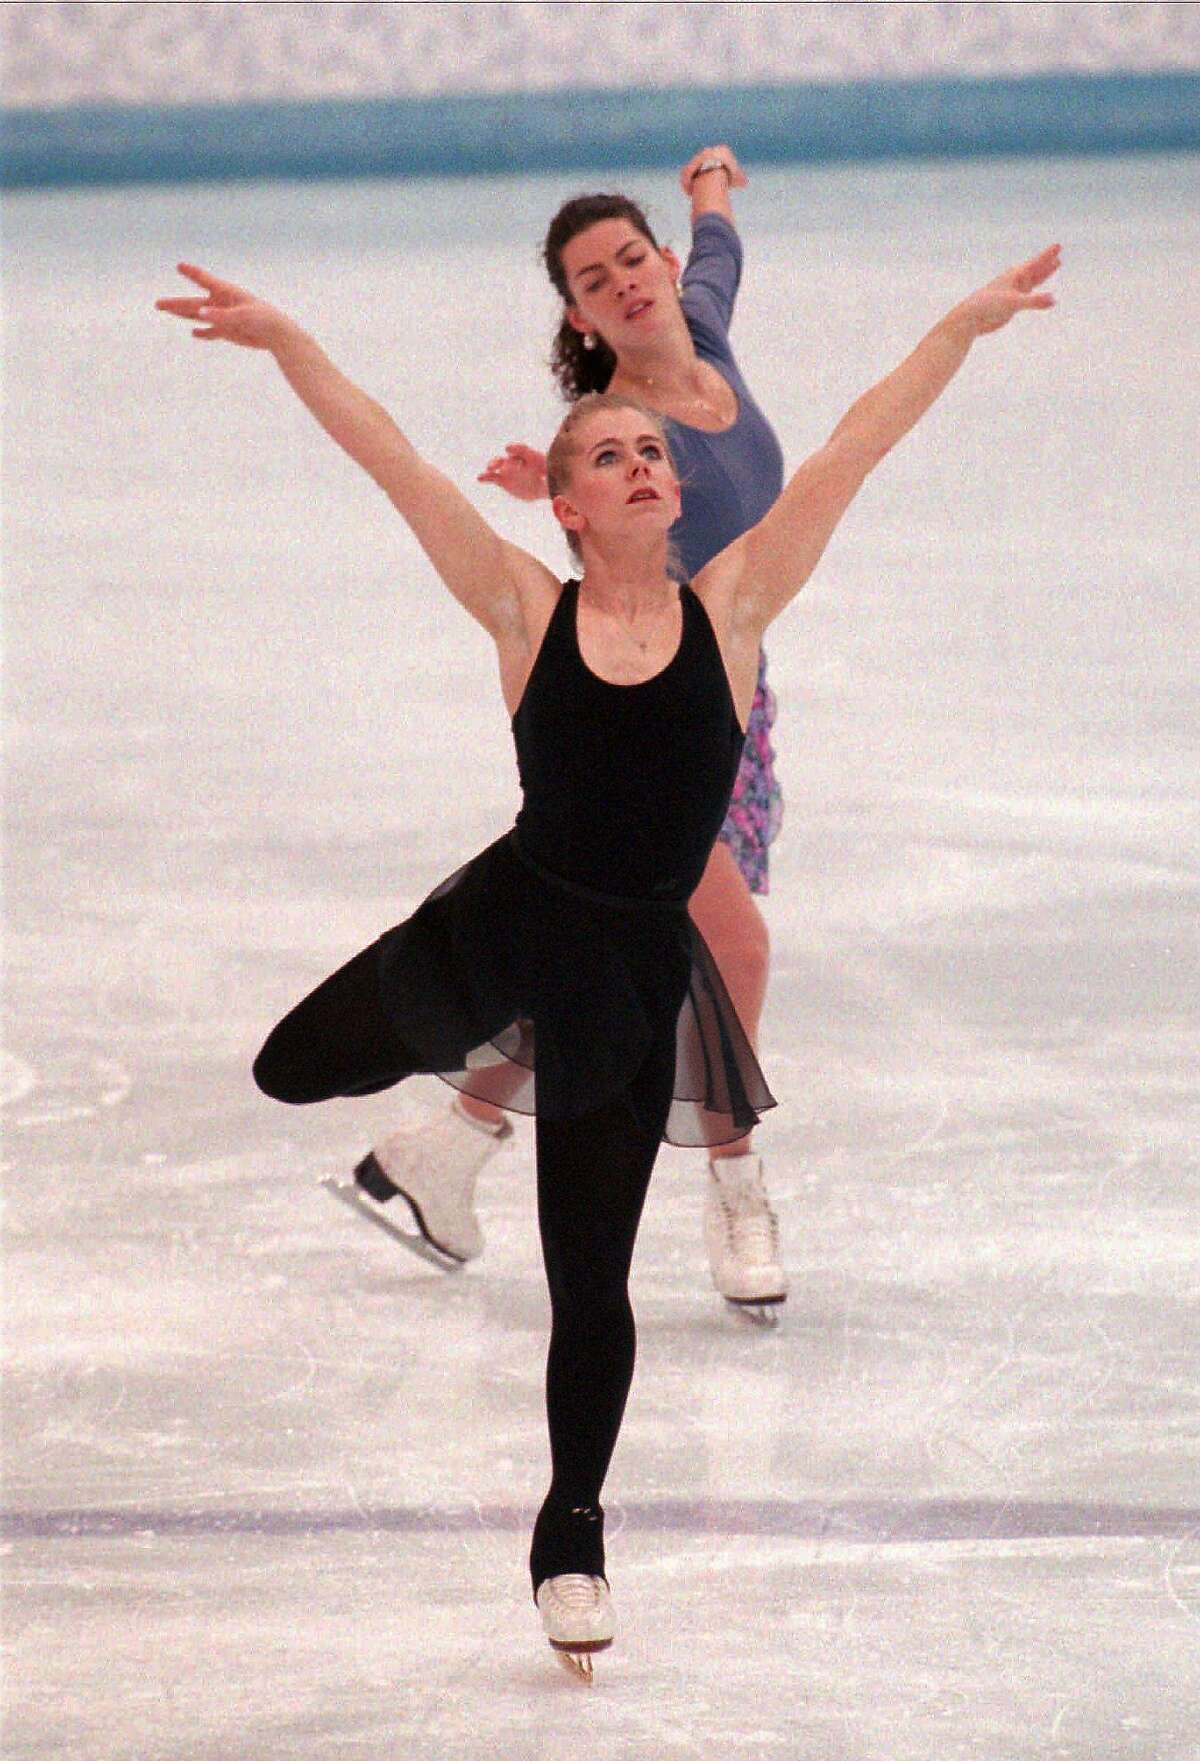 CHRONICLE 02/23/94 // American figure skaters Tonya Harding and Nancy Kerrigan, rear, skate through their routines during the practice session Tuesday, Feb. 22, 1994, at the Hamar Olympic Amphitheatre in Hamar, Norway. The women's technical program begins Wednesday evening.(AP Photo/Doug Mills)